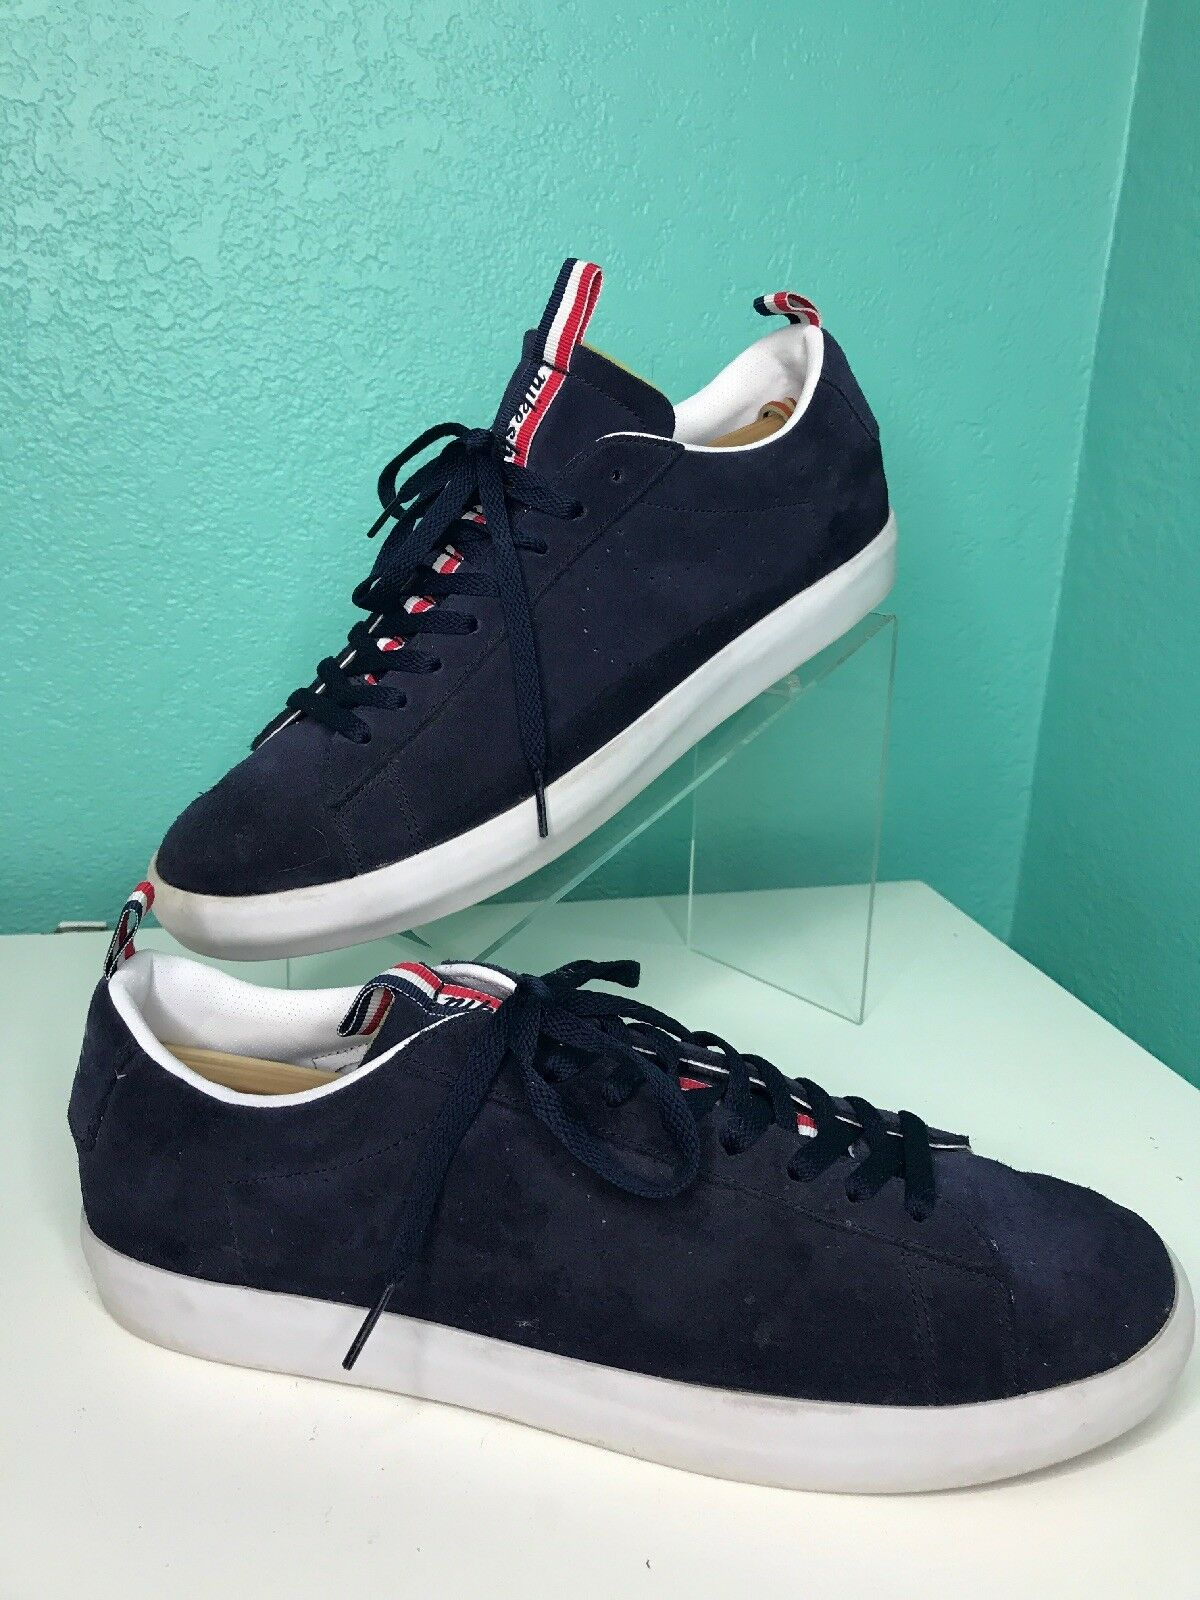 Nike Blazer Low PRM QS SB Country Club 874688 441 Nav Wh Men's Sz 11.5